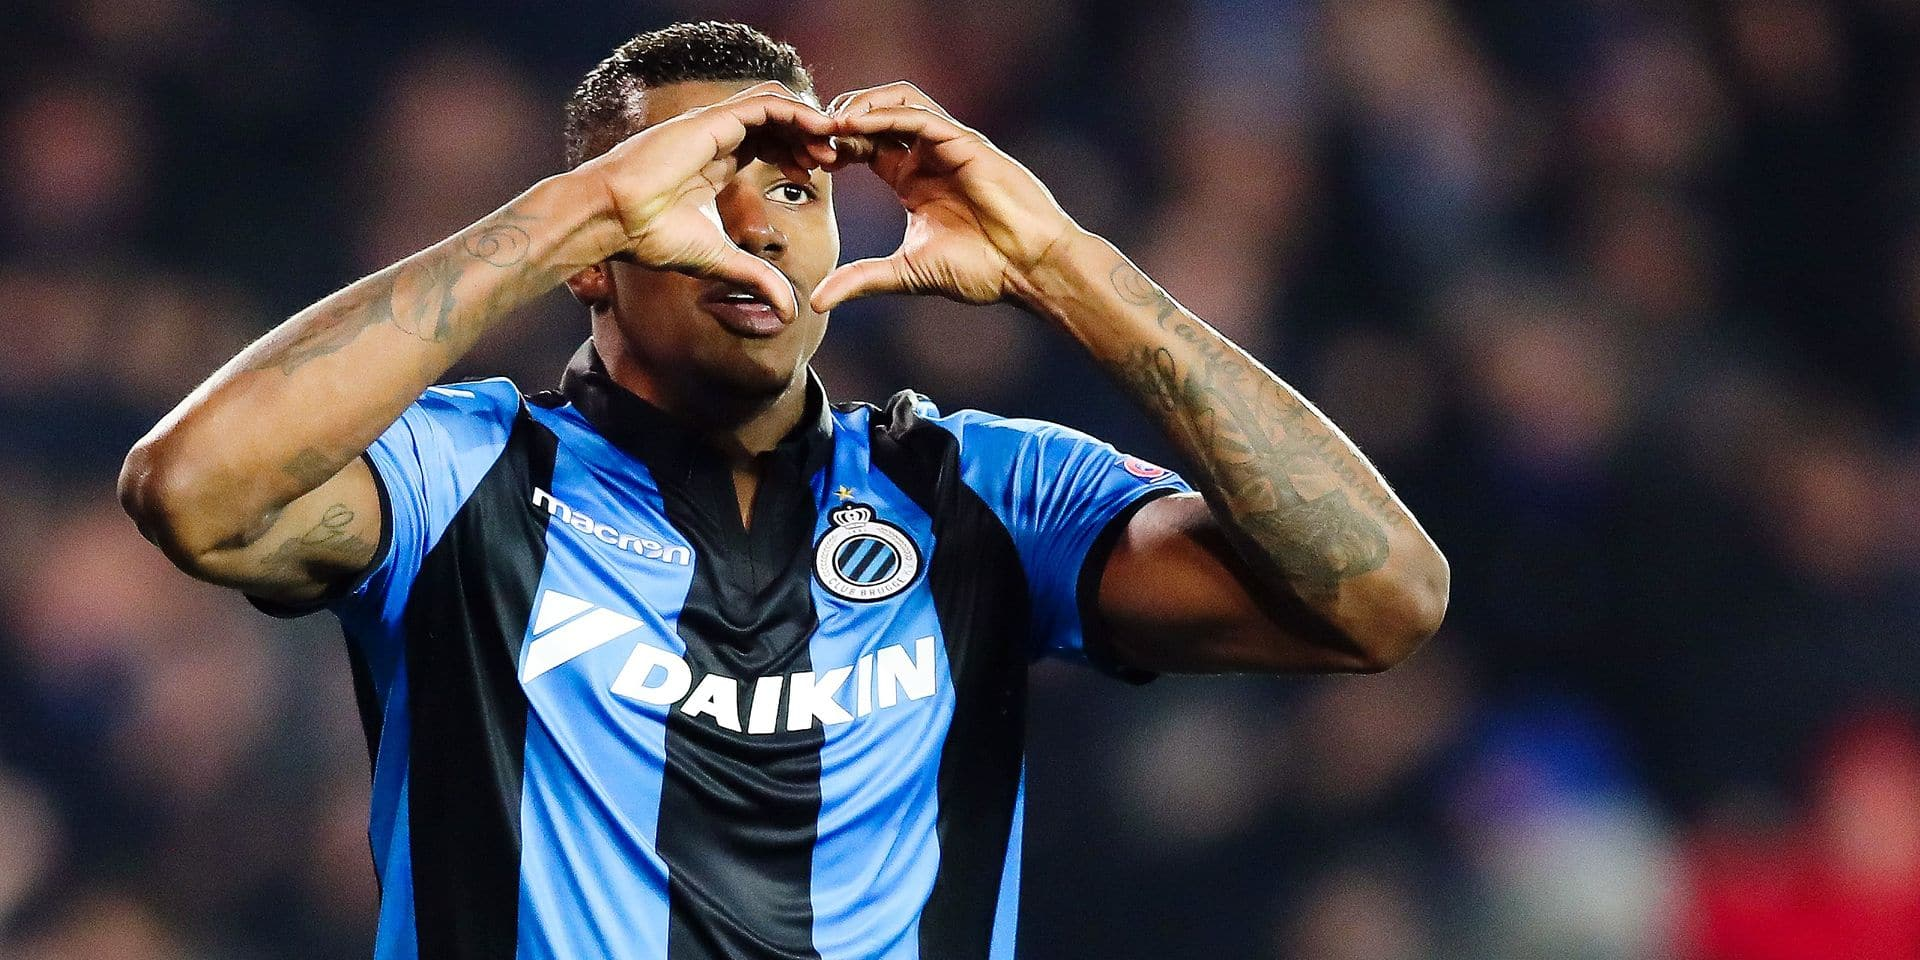 Club's Wesley Moraes forms a heart with his hands as he celebrates after scoring during a soccer game between Belgian team Club Brugge KV and Austrian club FC Red Bull Salzburg, the first leg of the 1/16 finals (round of 32) in the Europa League competition, Thursday 14 February 2019 in Brugge. BELGA PHOTO BRUNO FAHY